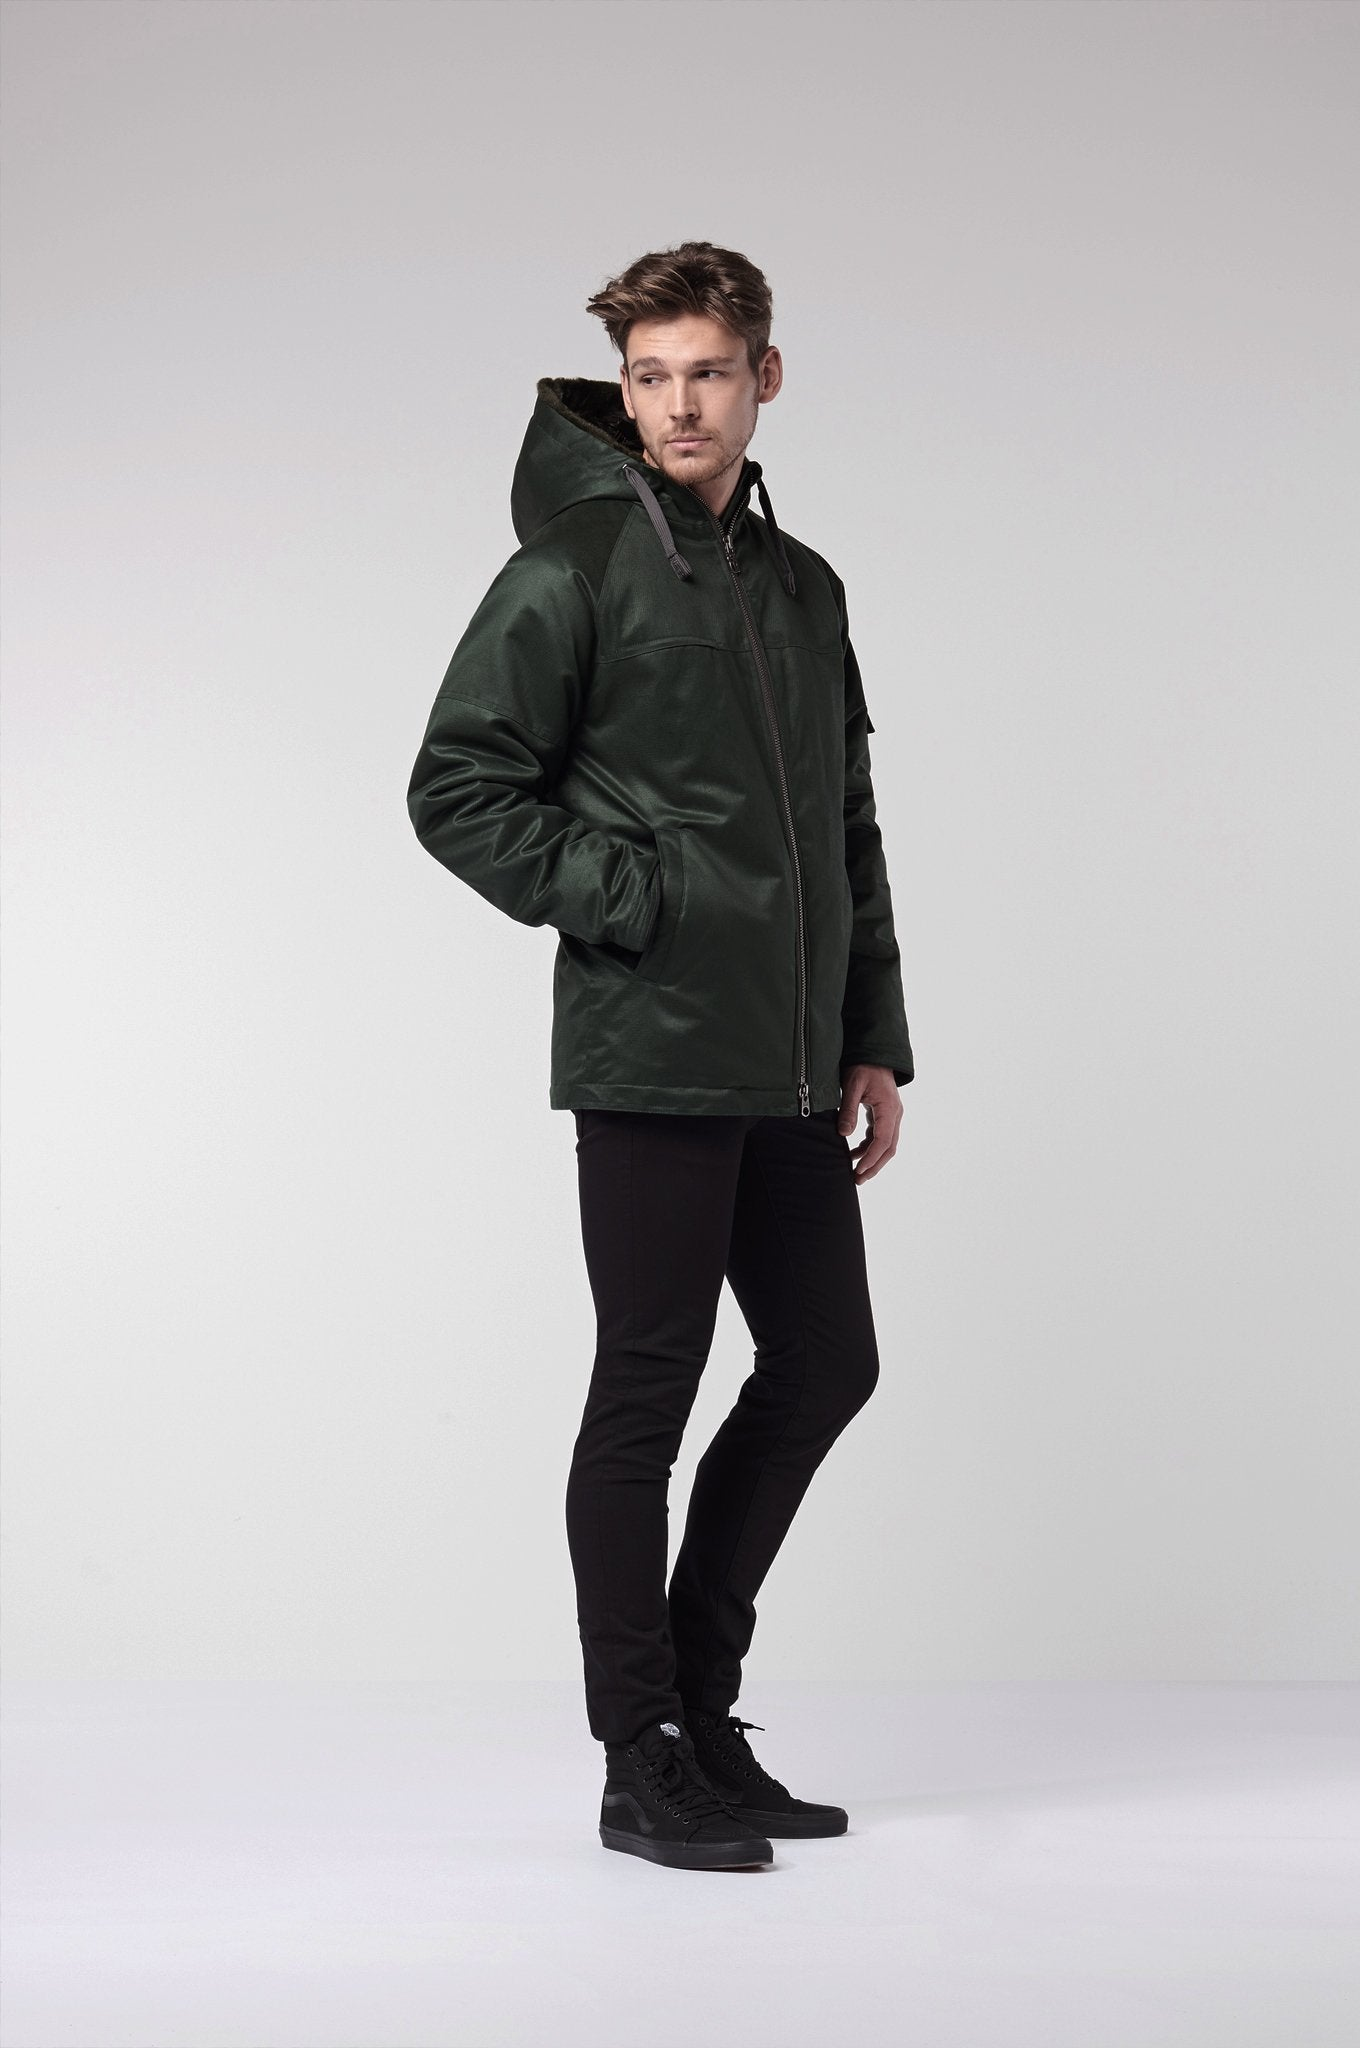 HEMP Vegan Jacket Green - Komodo Fashion